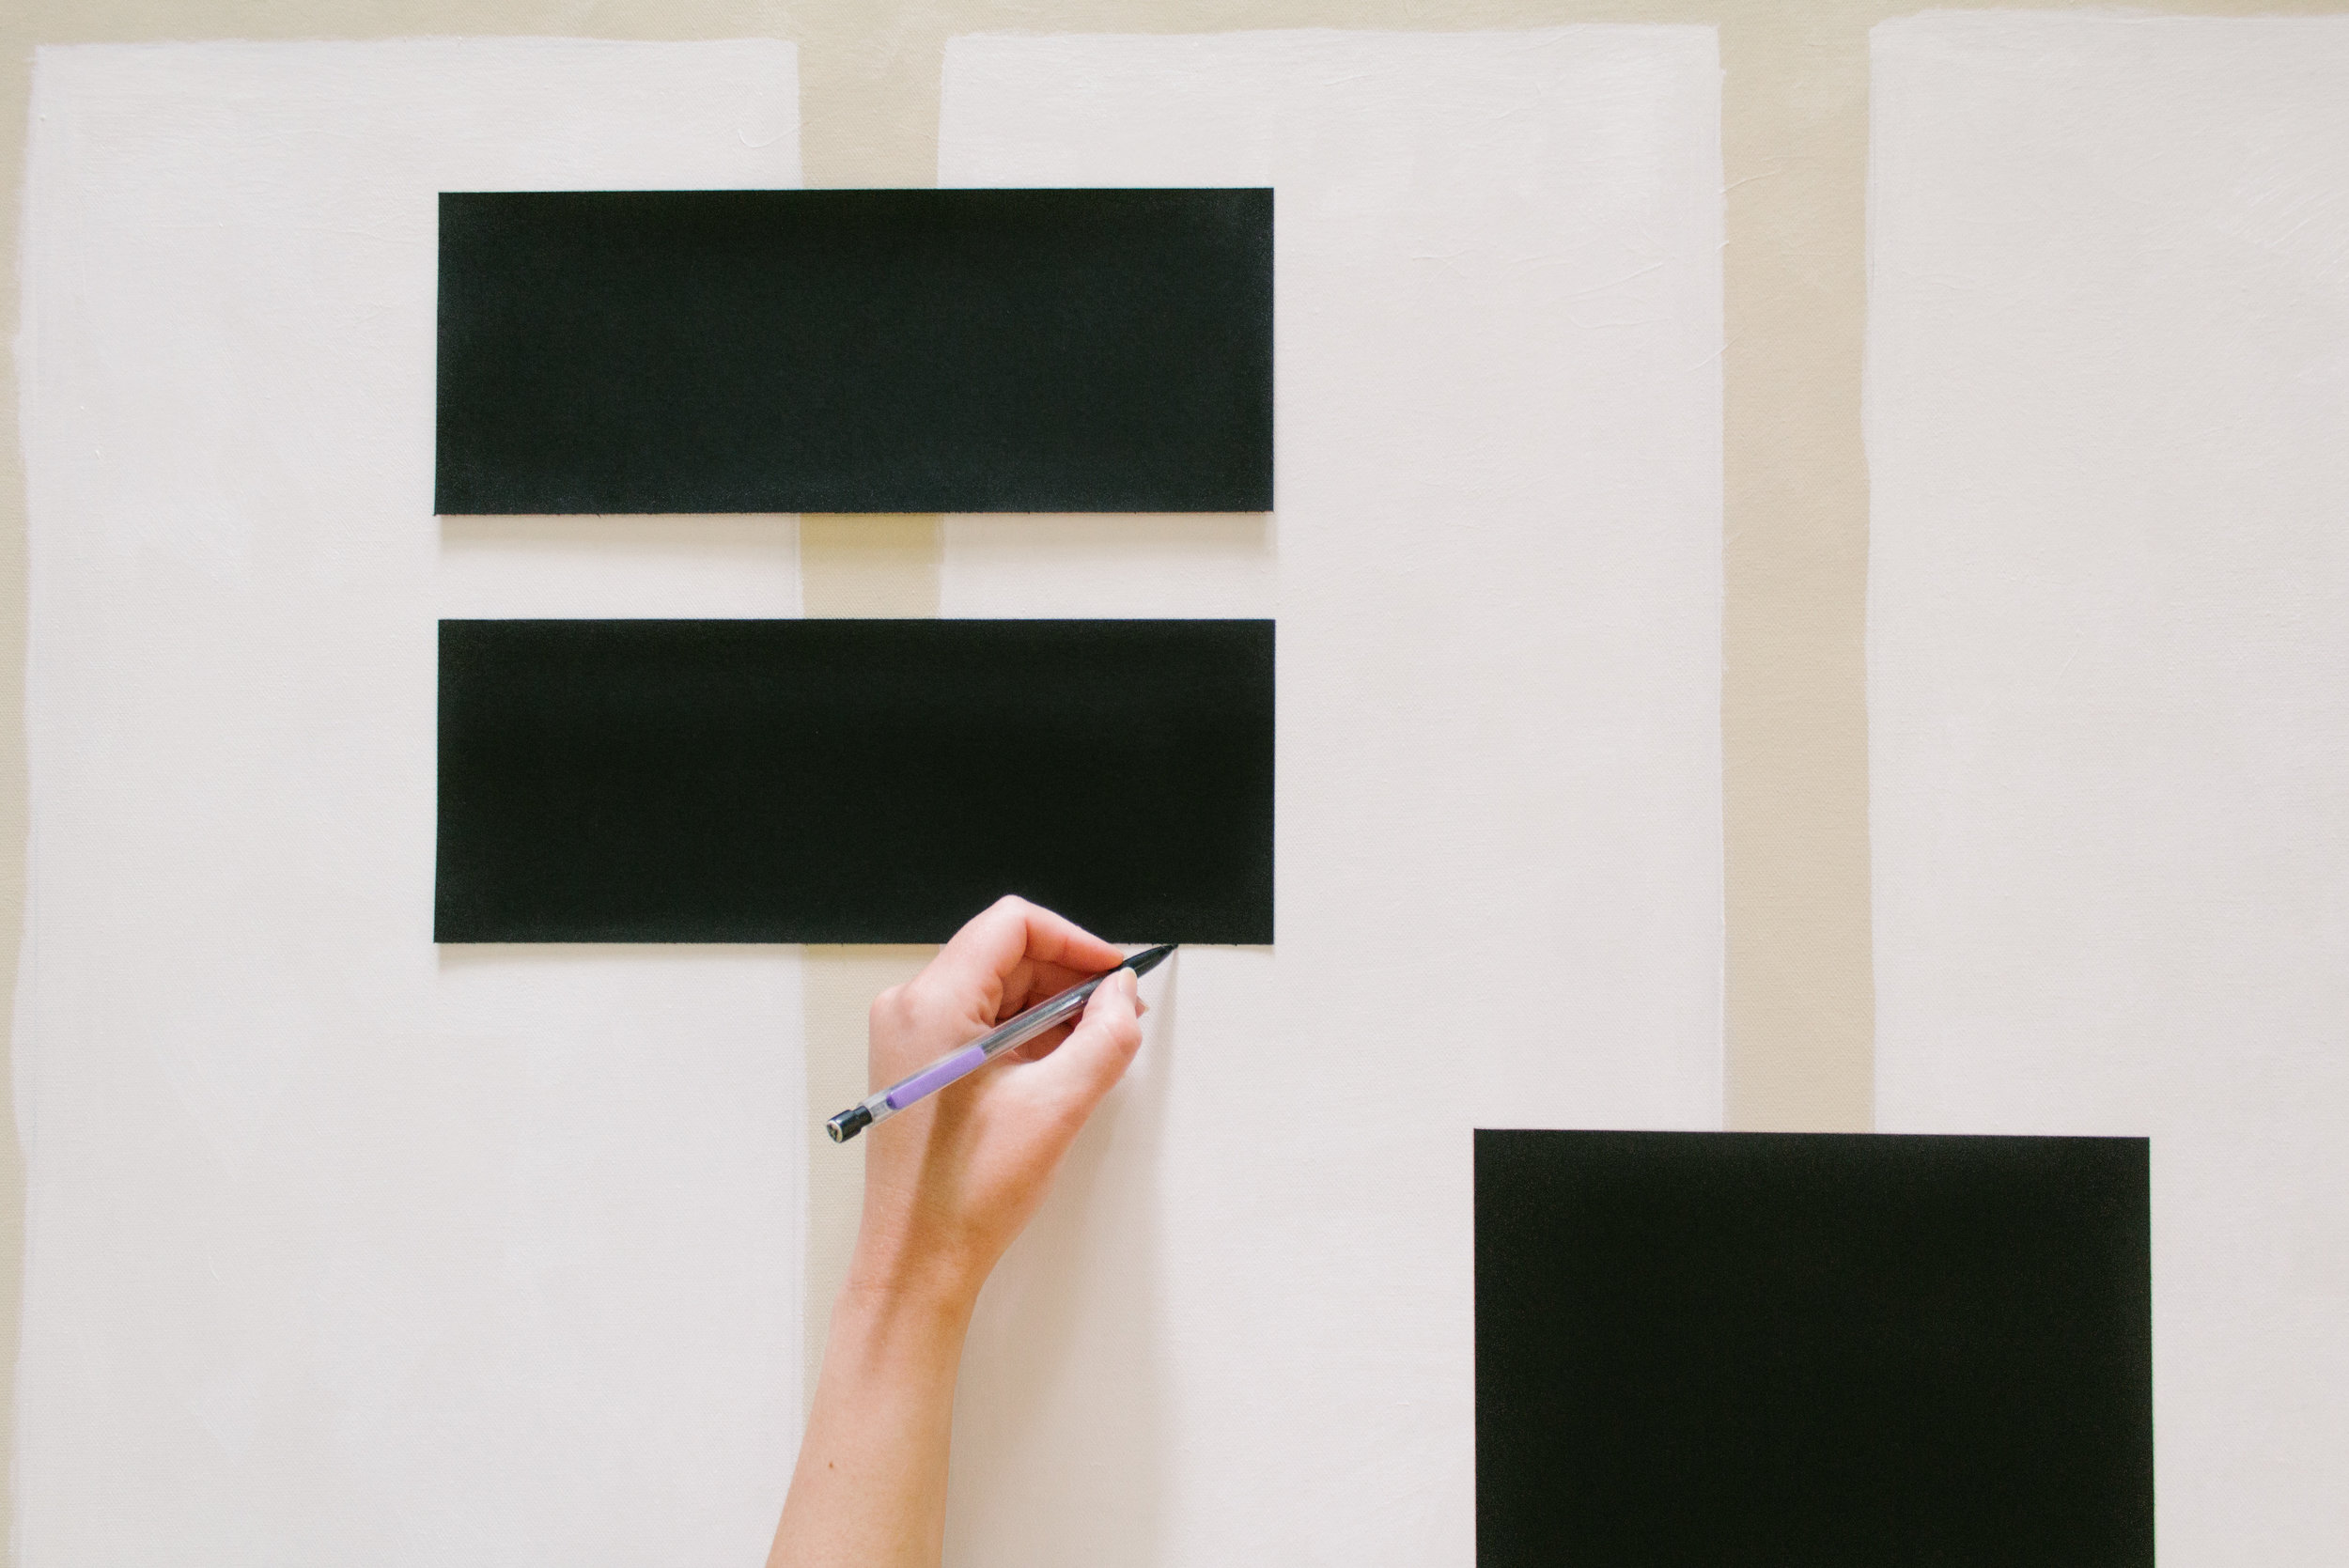 DIY Copycat Painting by Nadine Stay. Black, white, and beige artwork with an antique brass frame. Acrylic paint on canvas. Modern geometric artwork for the home.